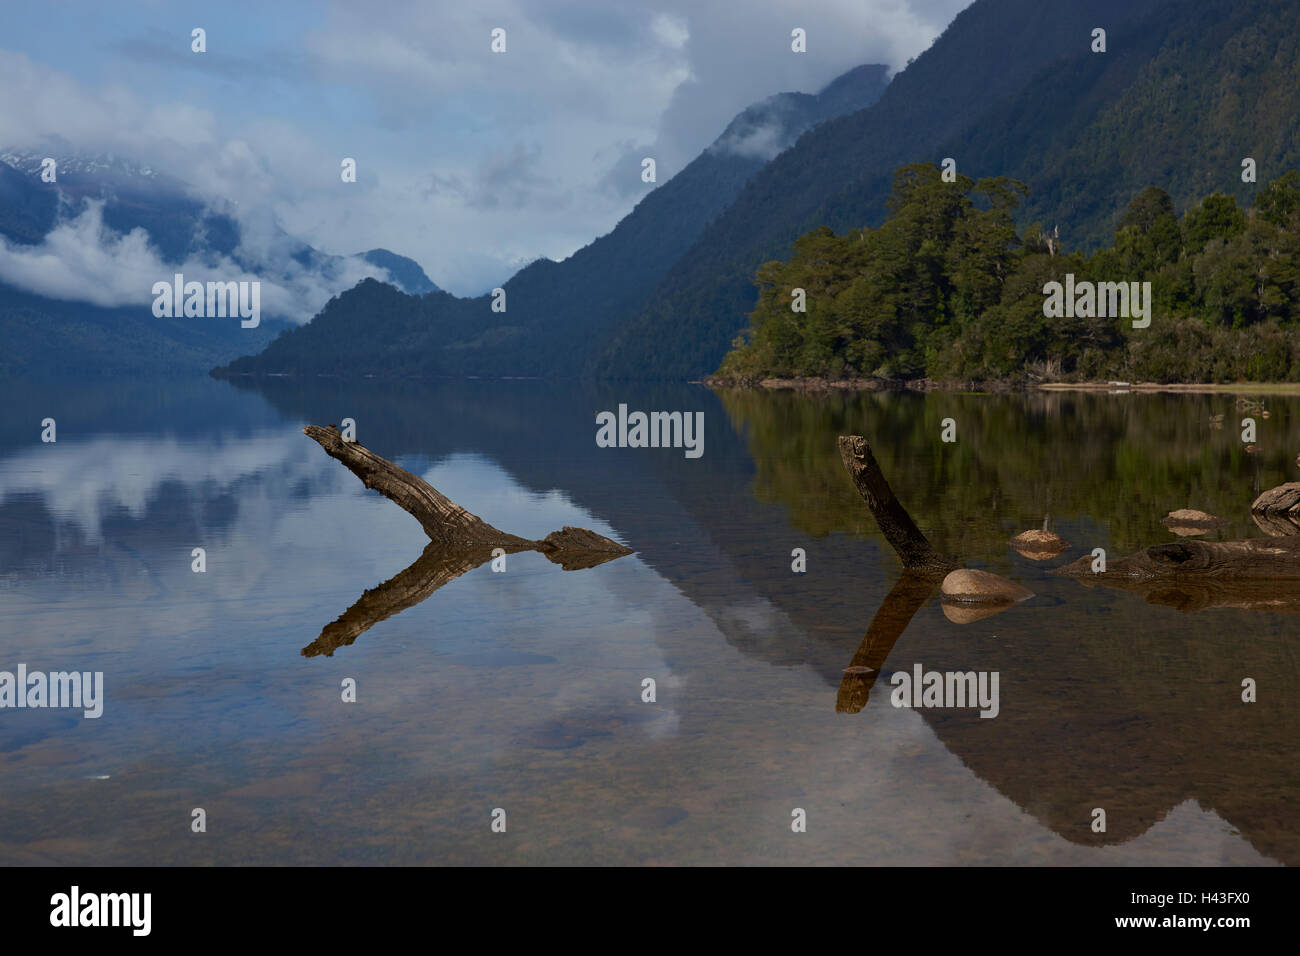 Lake Rosselot located along the Carretera Austral in the Aysen Region of southern Chile. - Stock Image